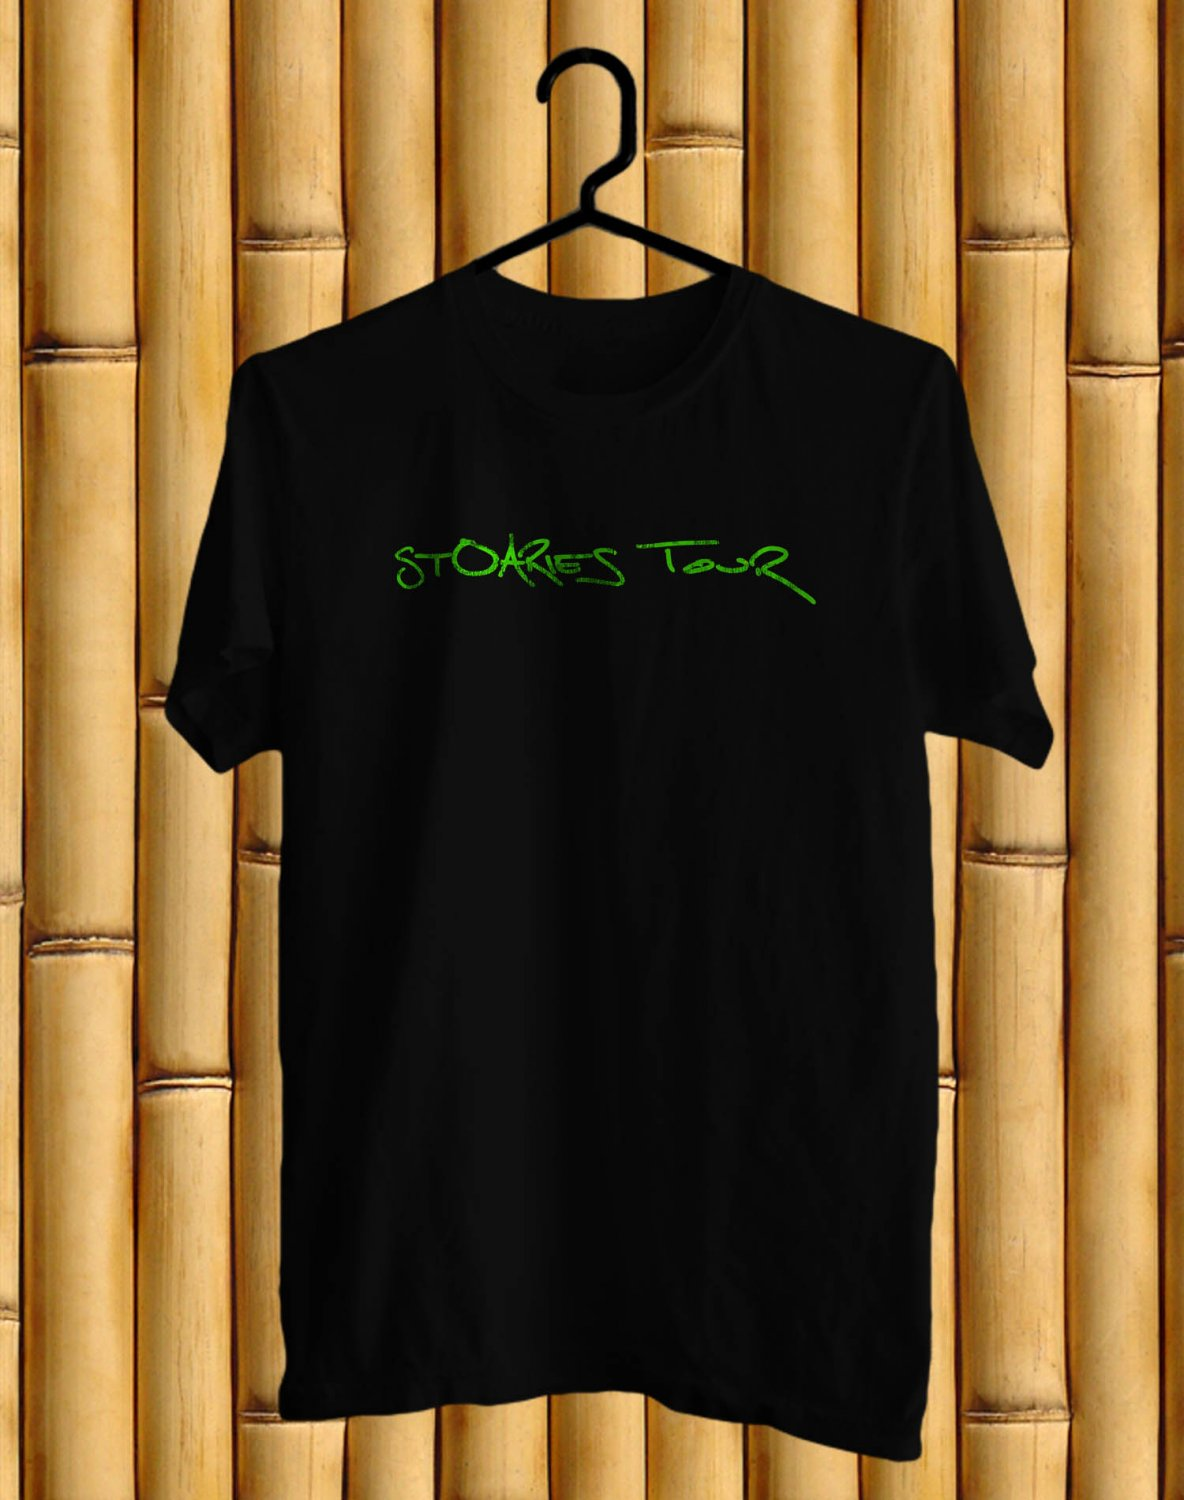 O.A.R The Stoaries 2017 Black Tee's Front Side by Complexart